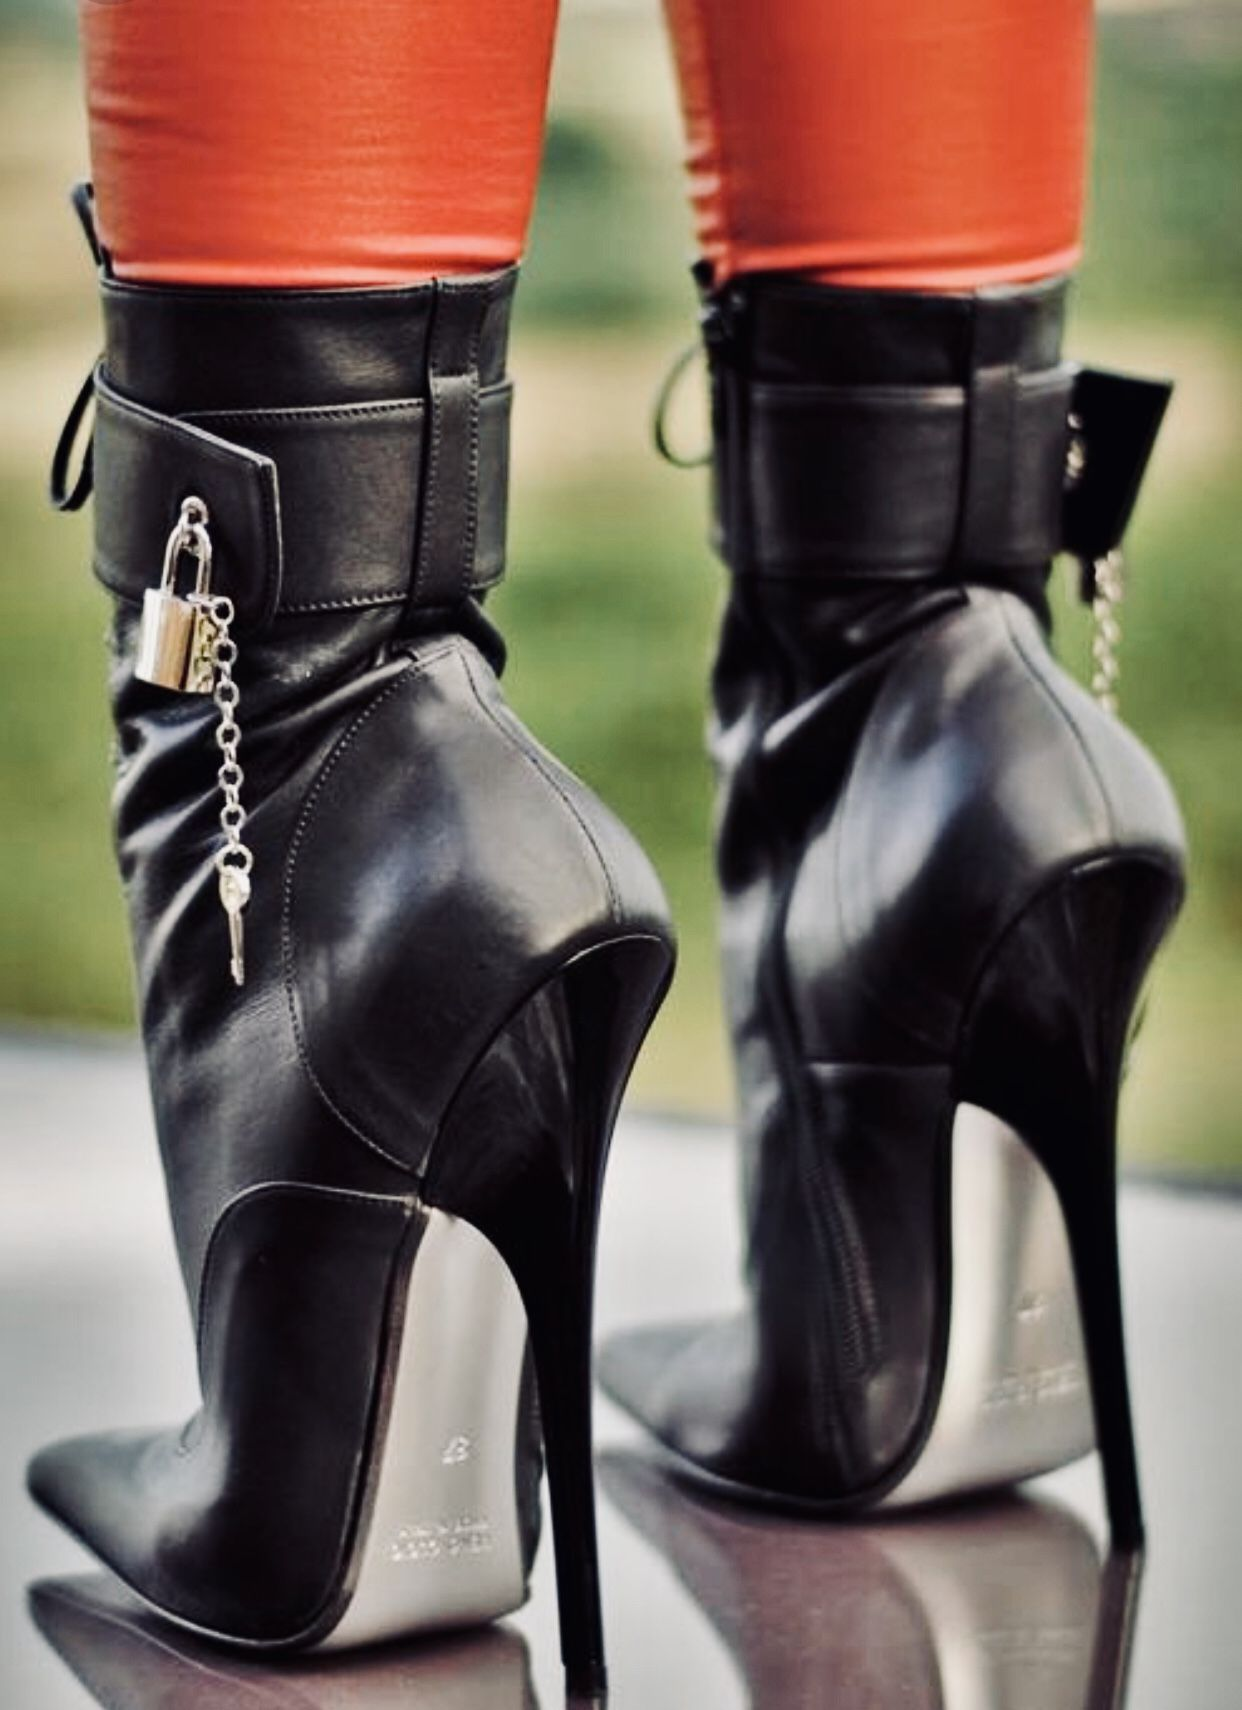 53a312d77ea5 Ankle boots with locks. Find this Pin and more on Real Heels ...